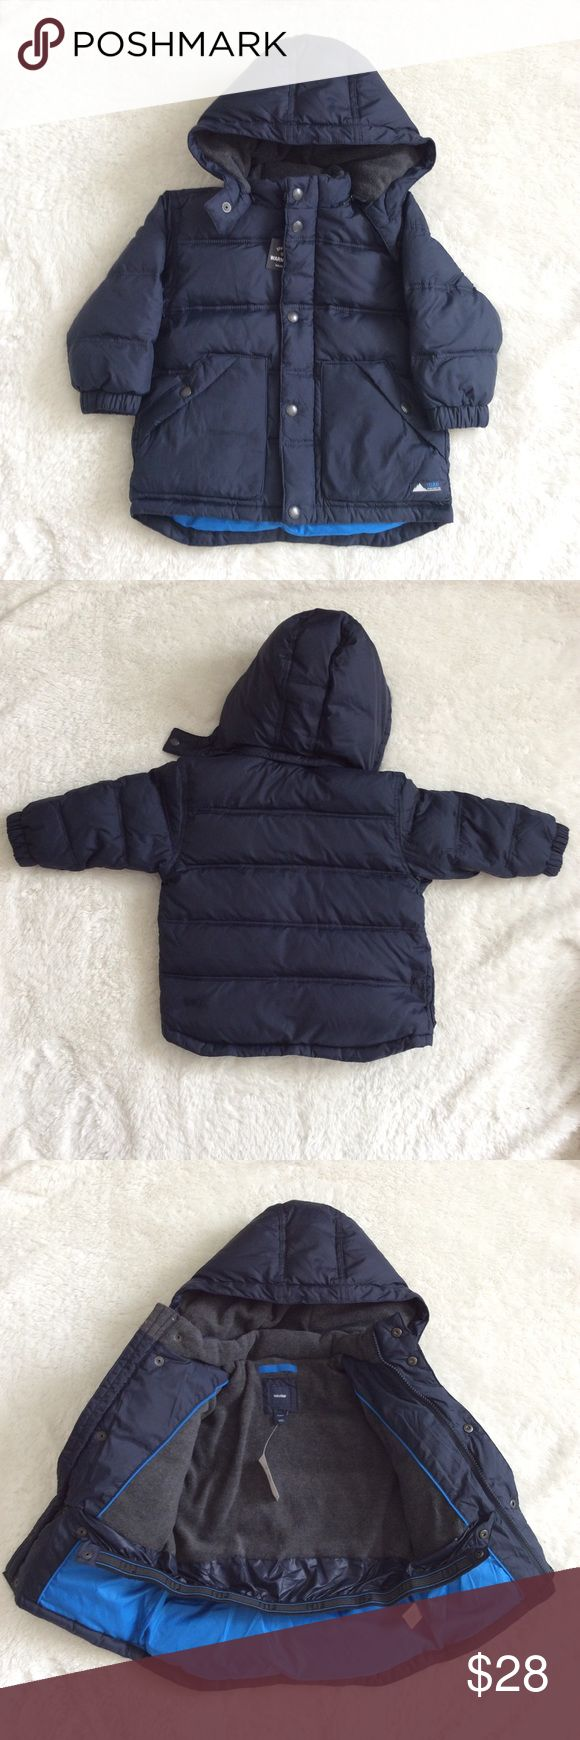 Baby Gap Winter Puffer Jacket NWT This jacket is adorable and warm. Navy blue color and zip off hood. Brand new with tags.  Size 2 years.  75% down, 25% feathers. GAP Jackets & Coats Puffers